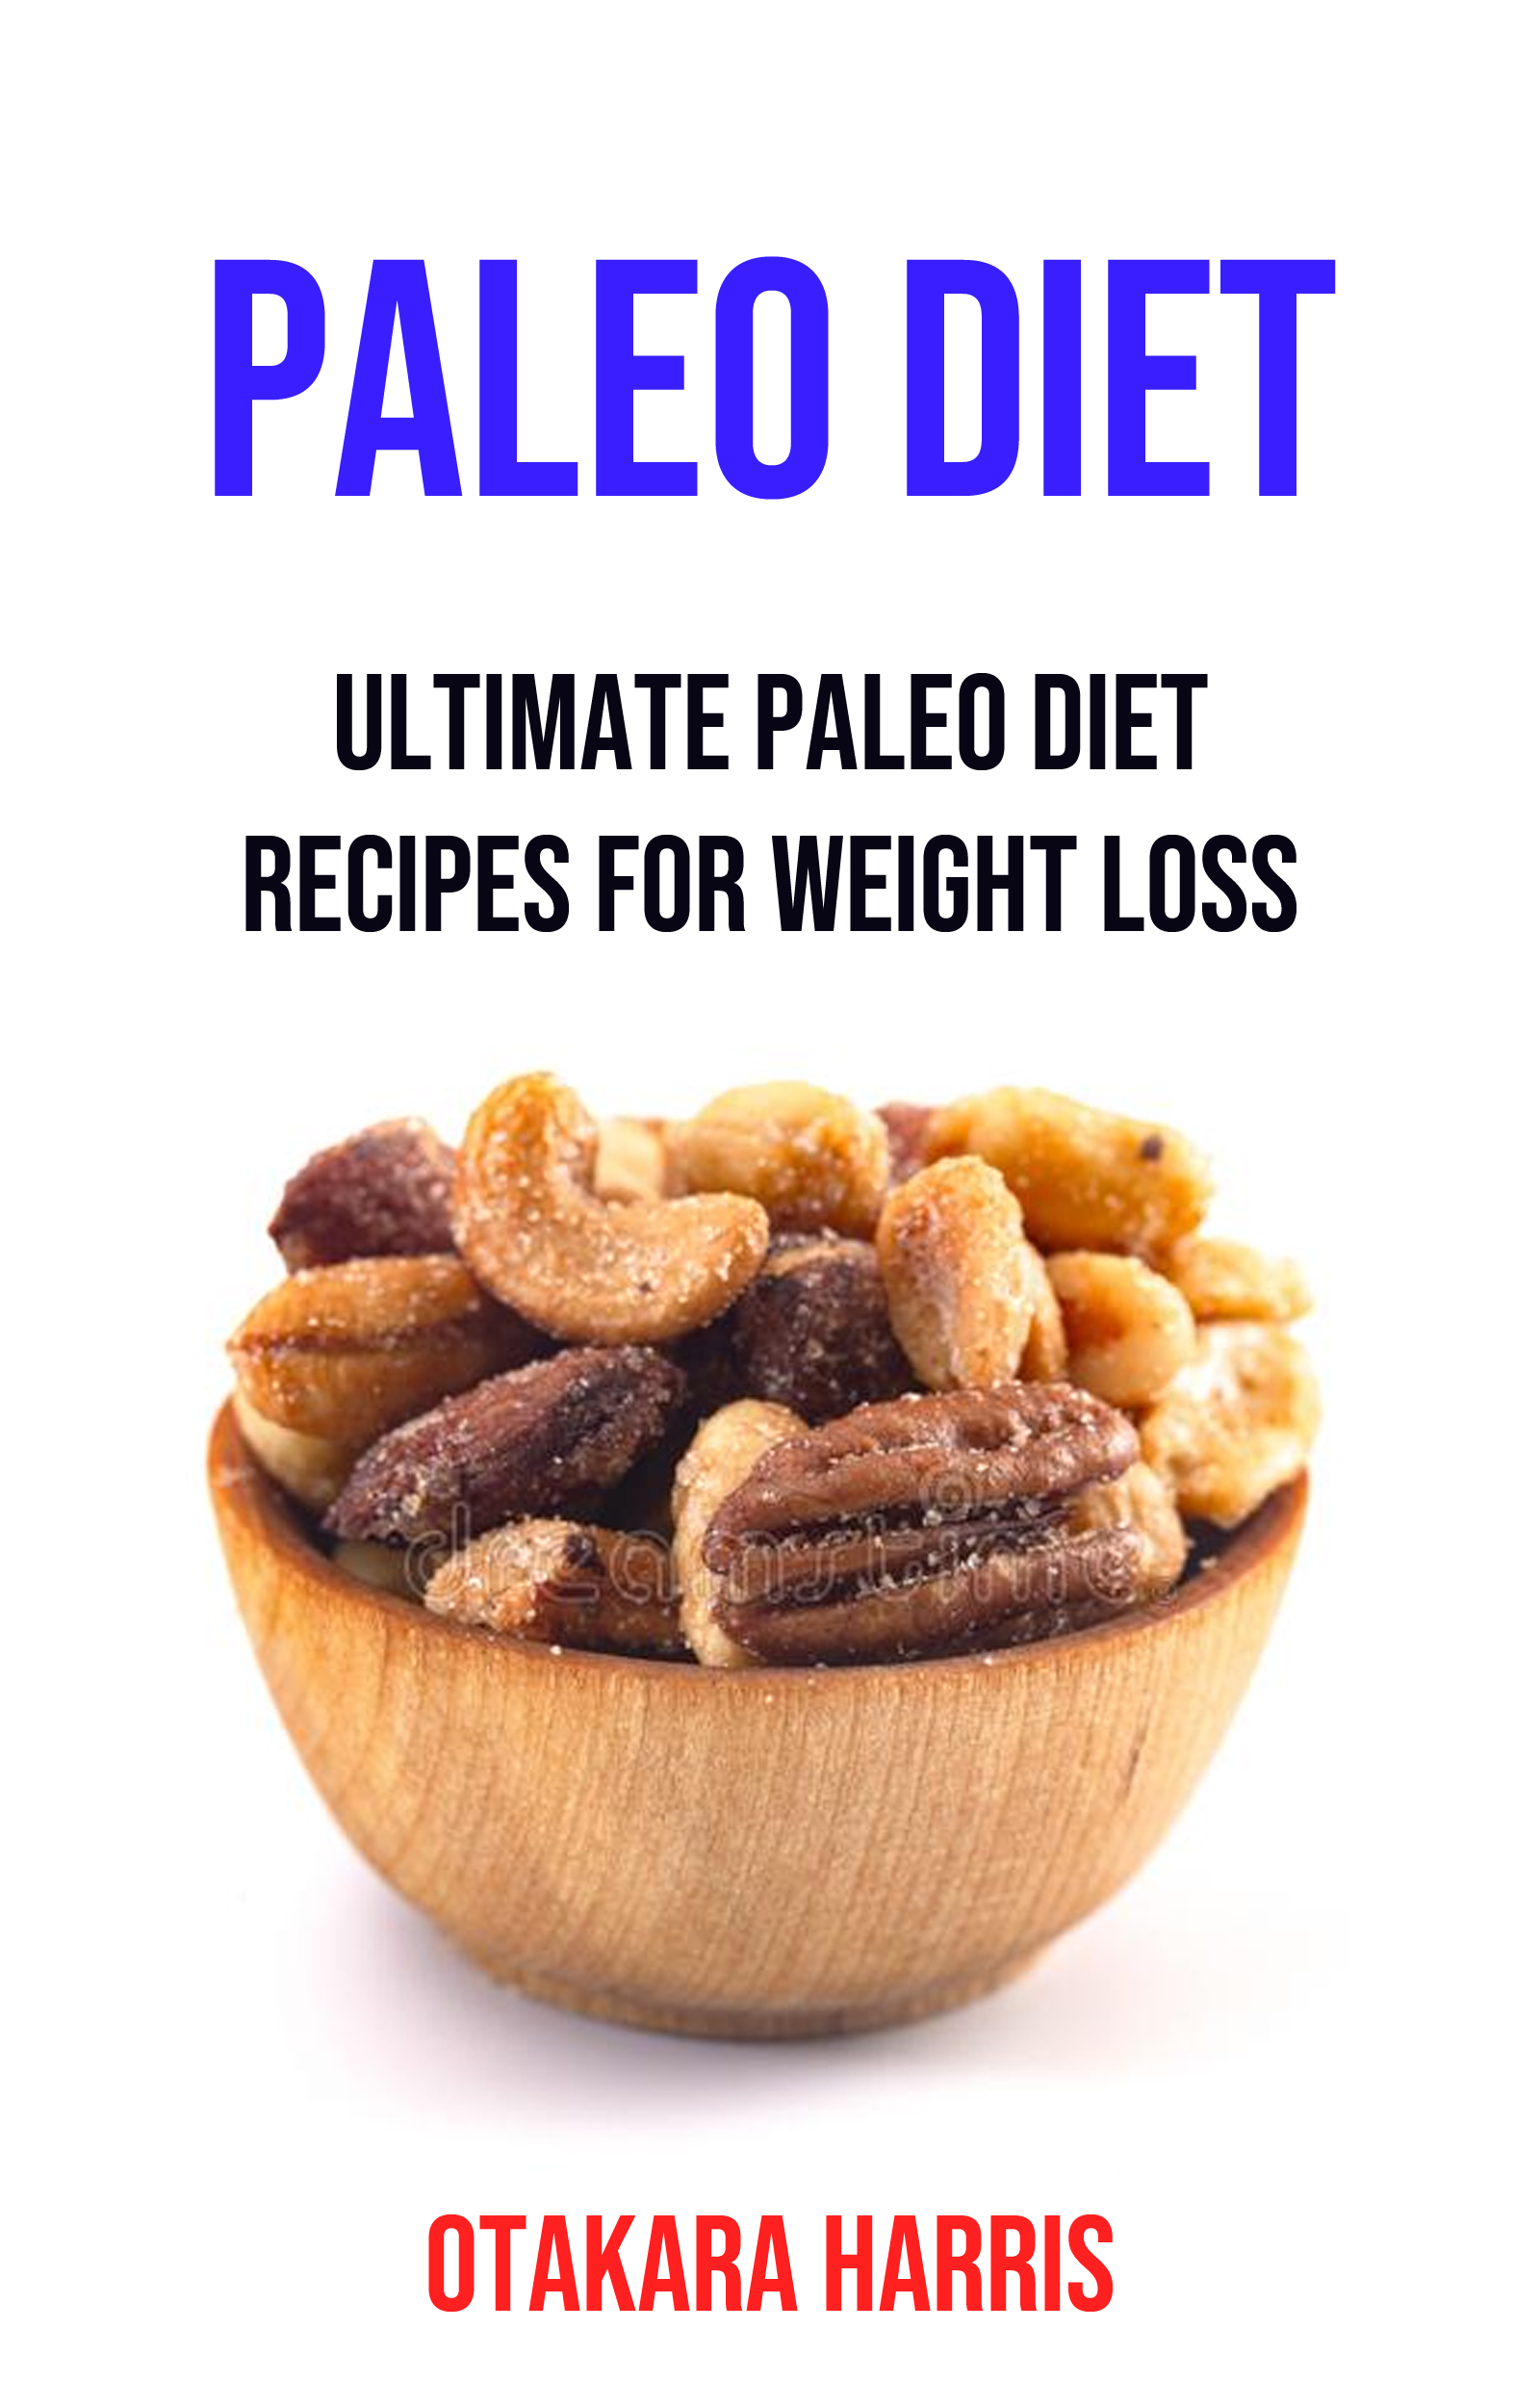 Paleo diet: ultimate paleo diet recipes for weight loss